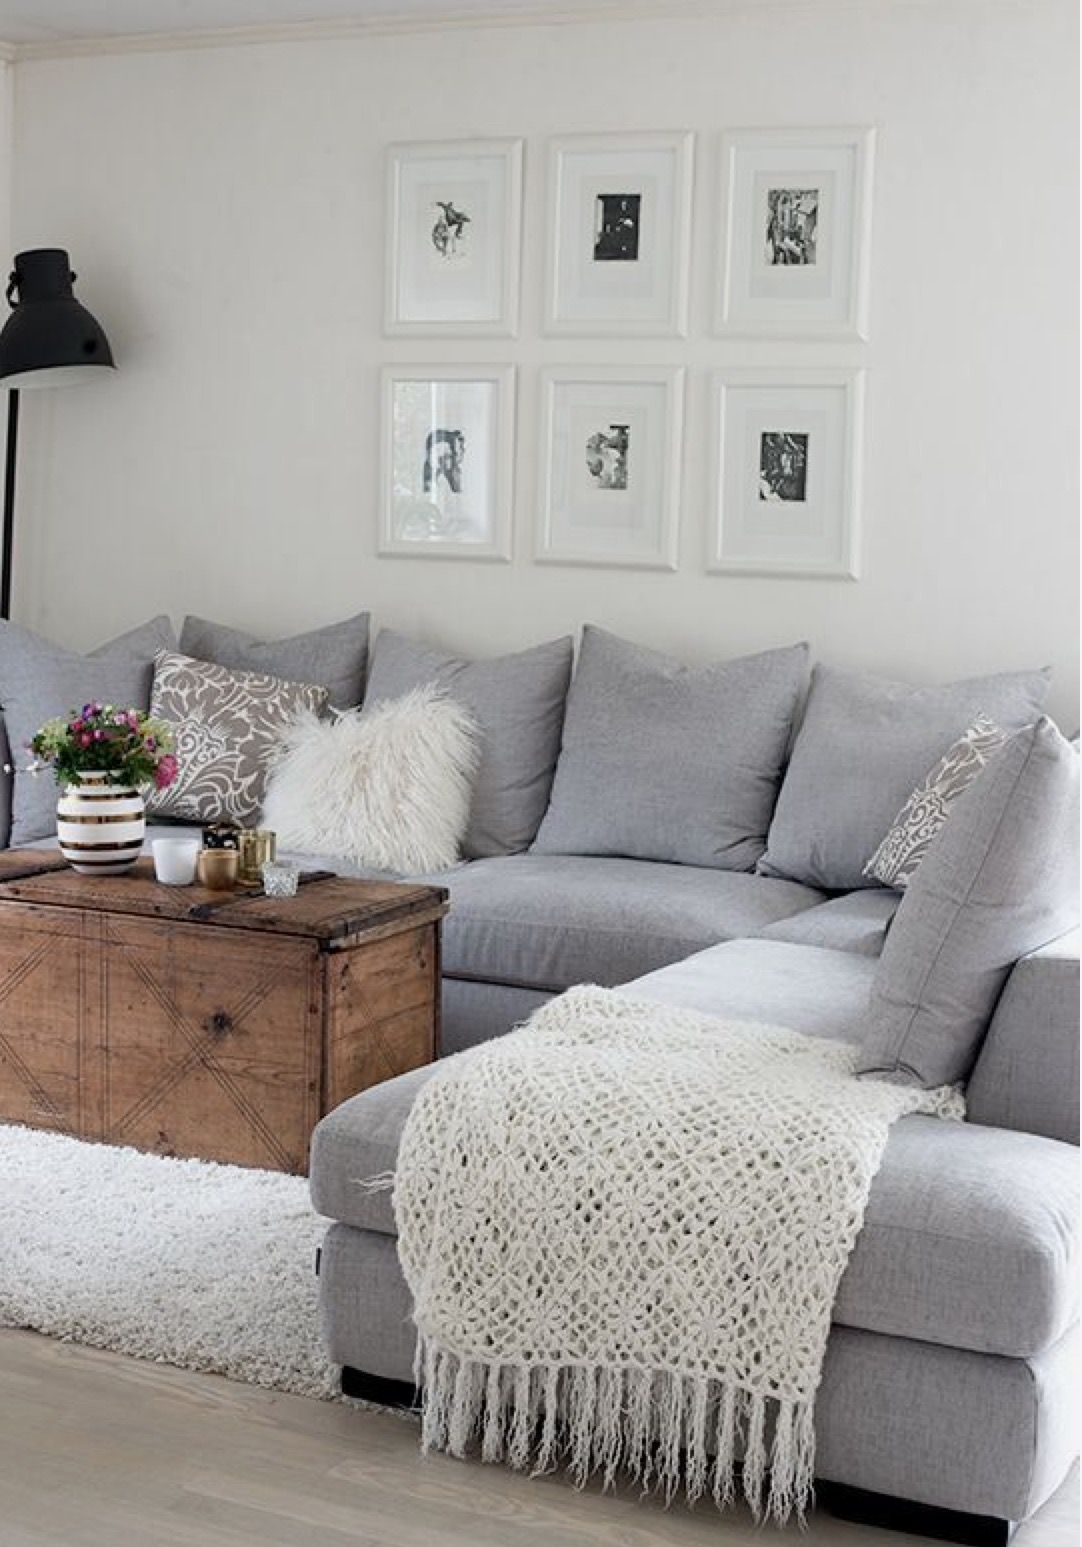 First apartment | Apartment | Pinterest | Flats, Living rooms and ...